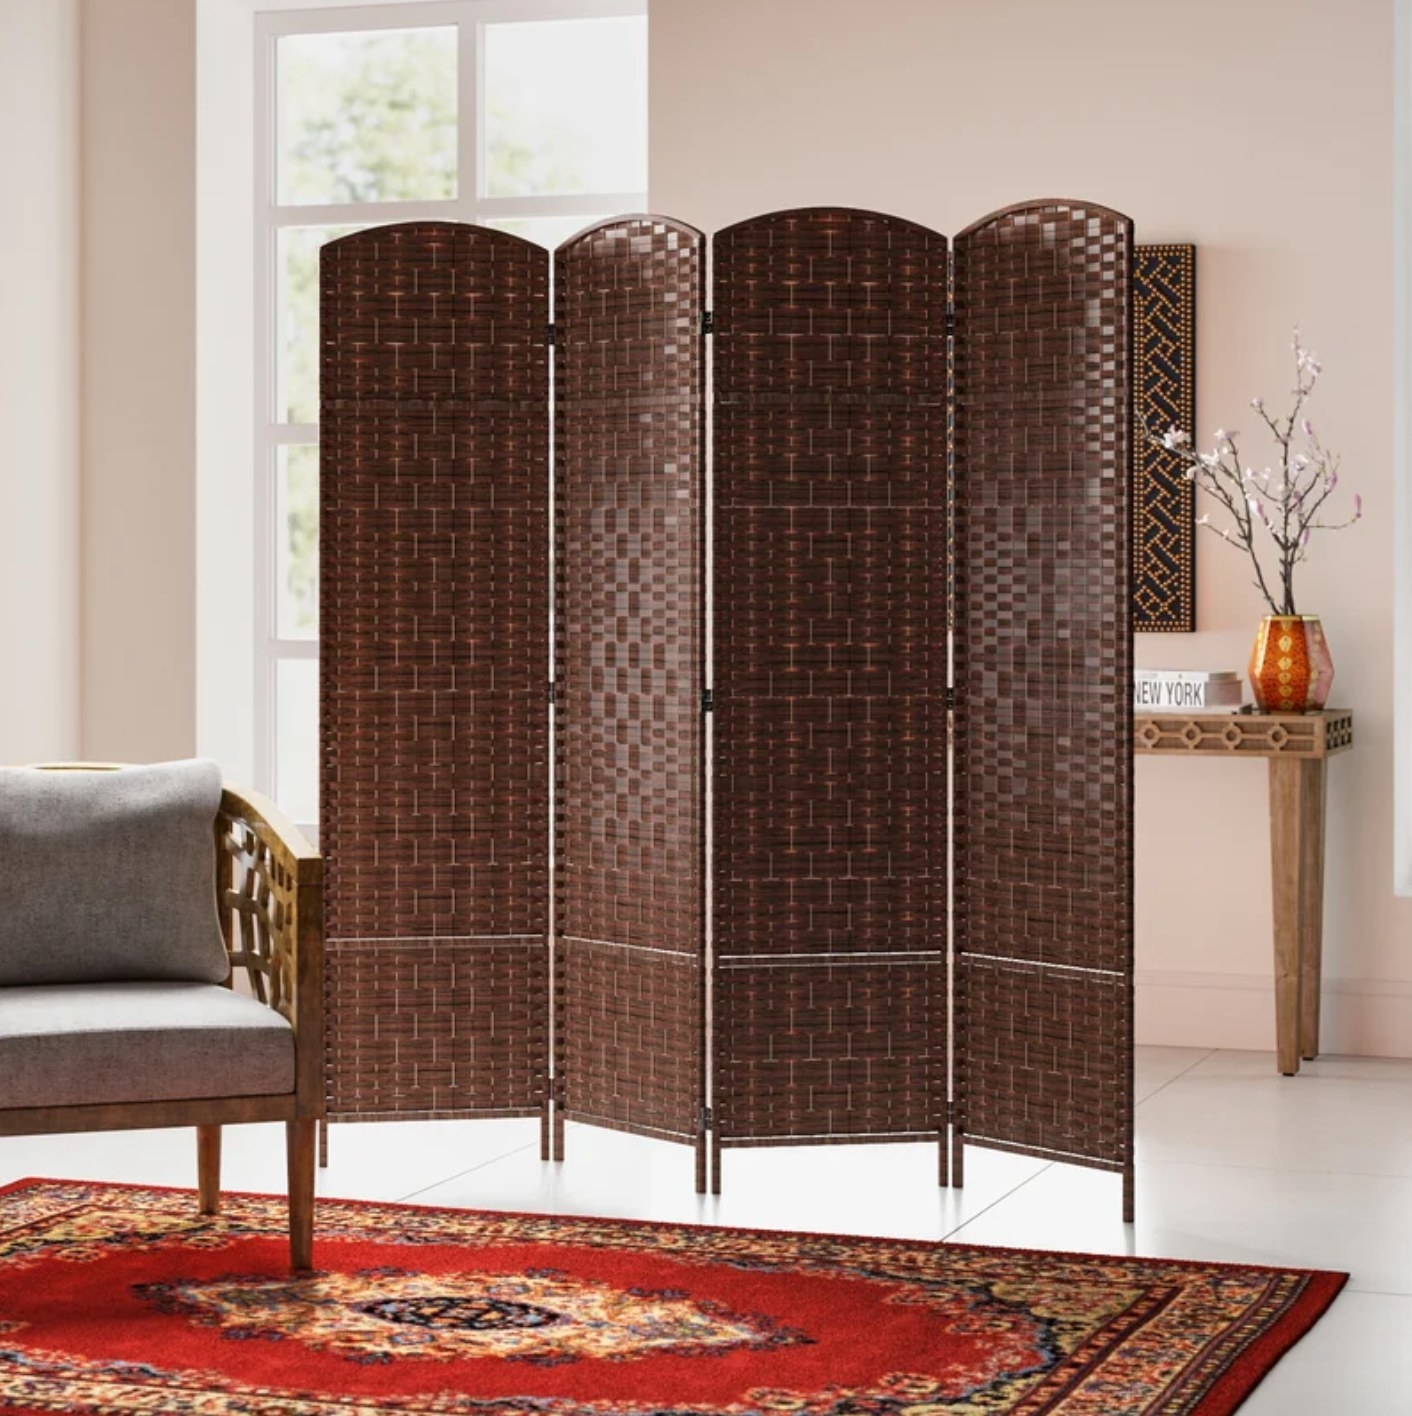 The room divider in brown